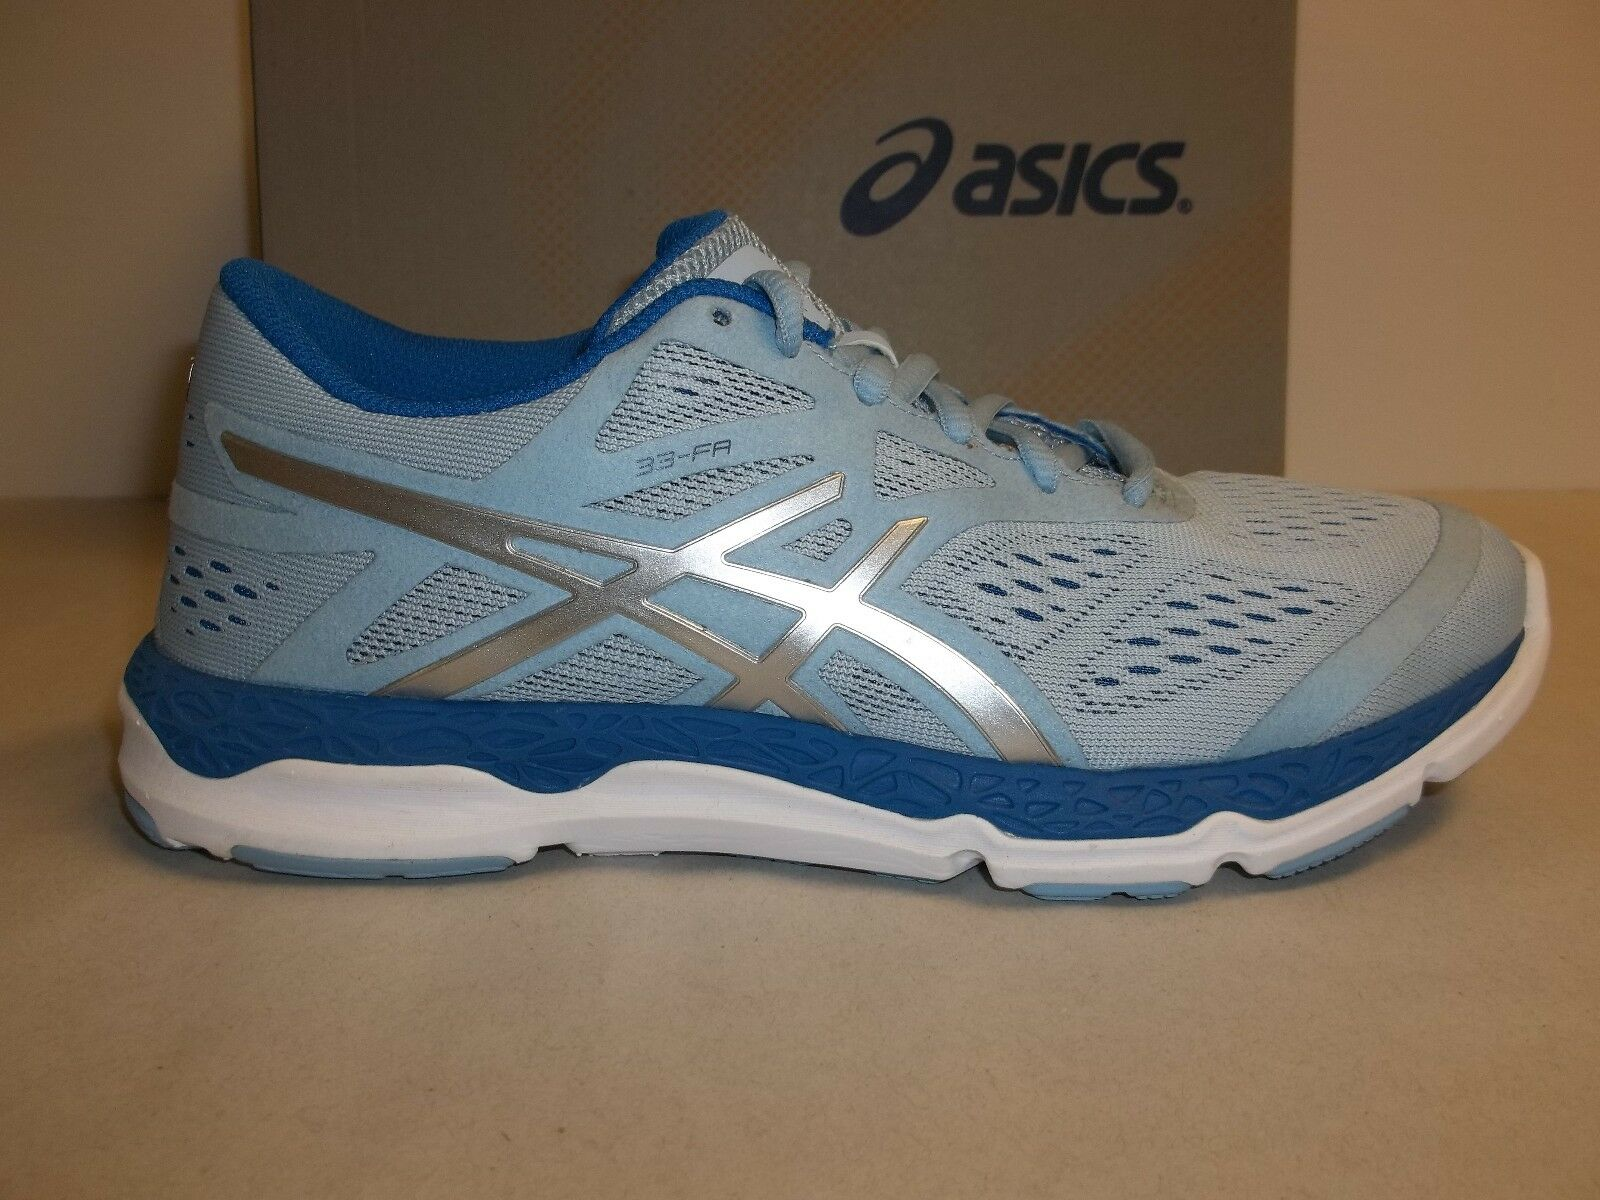 Asics Size 6 Style 33-FA Powder Blue Training Running Sneakers New Womens Shoes